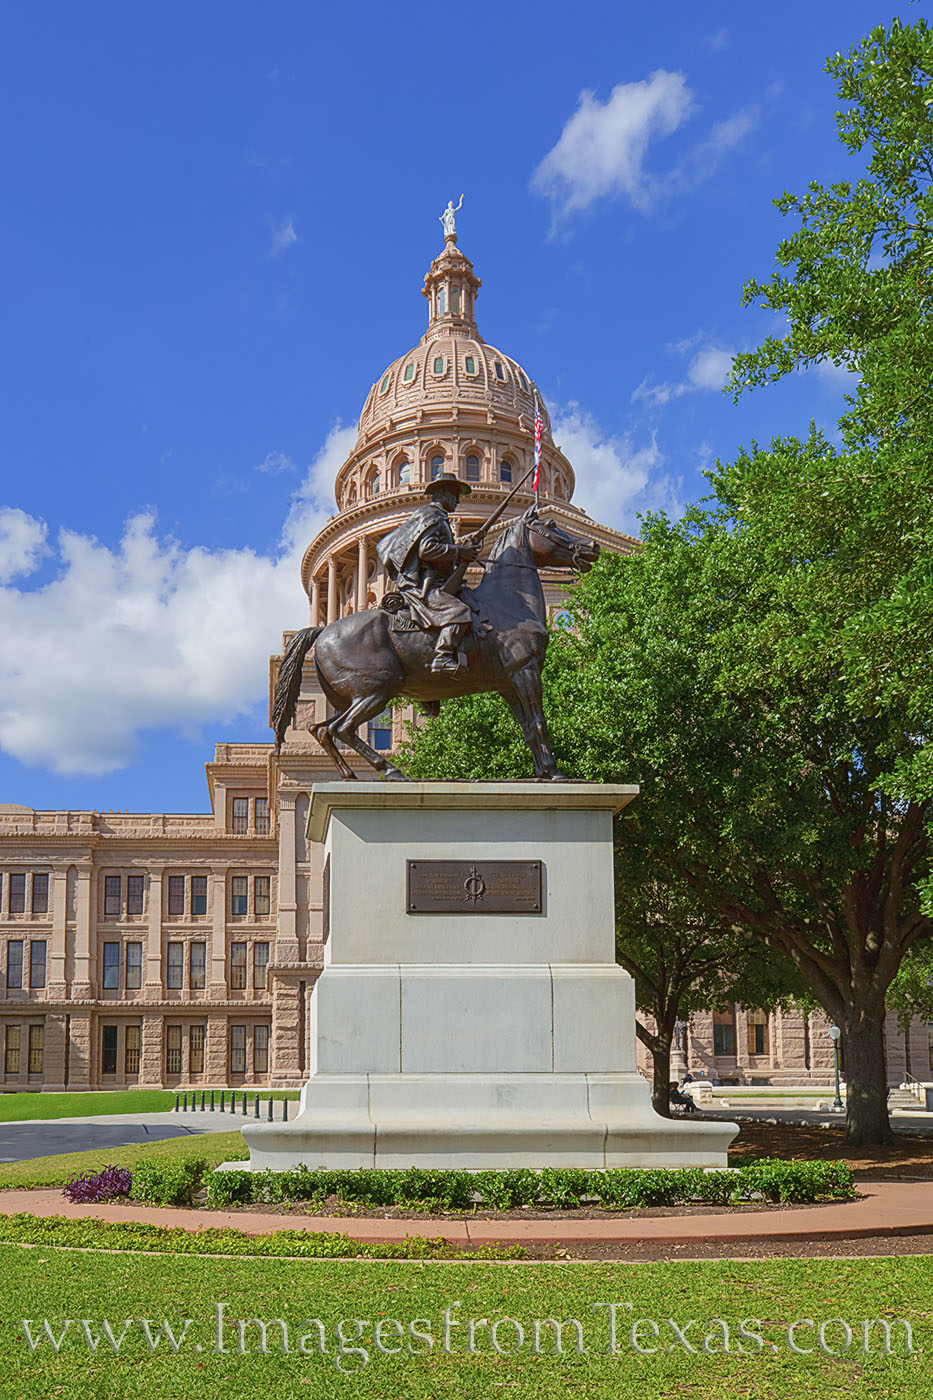 terry's texas rangers, texas state capitol, state capitol monuments, austin texas, memorial, texas rangers, photo